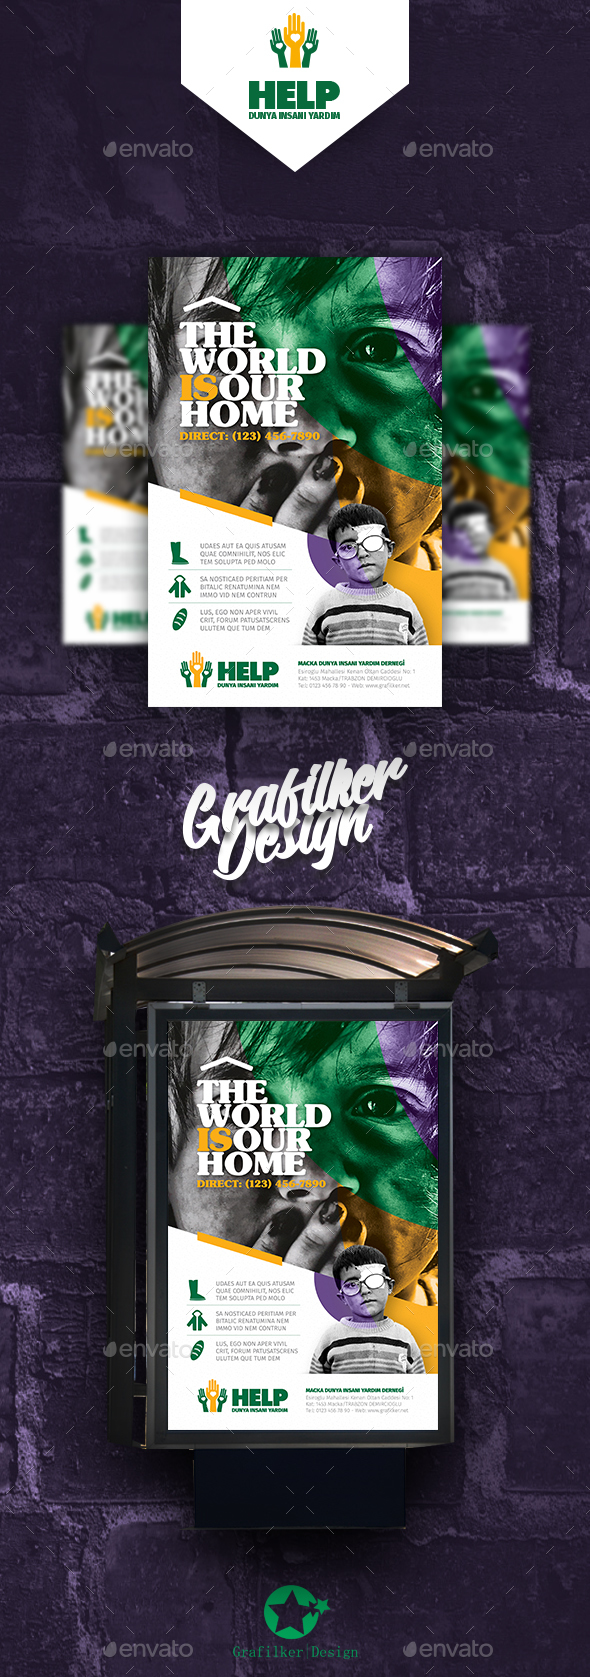 Charity Poster Templates - Signage Print Templates